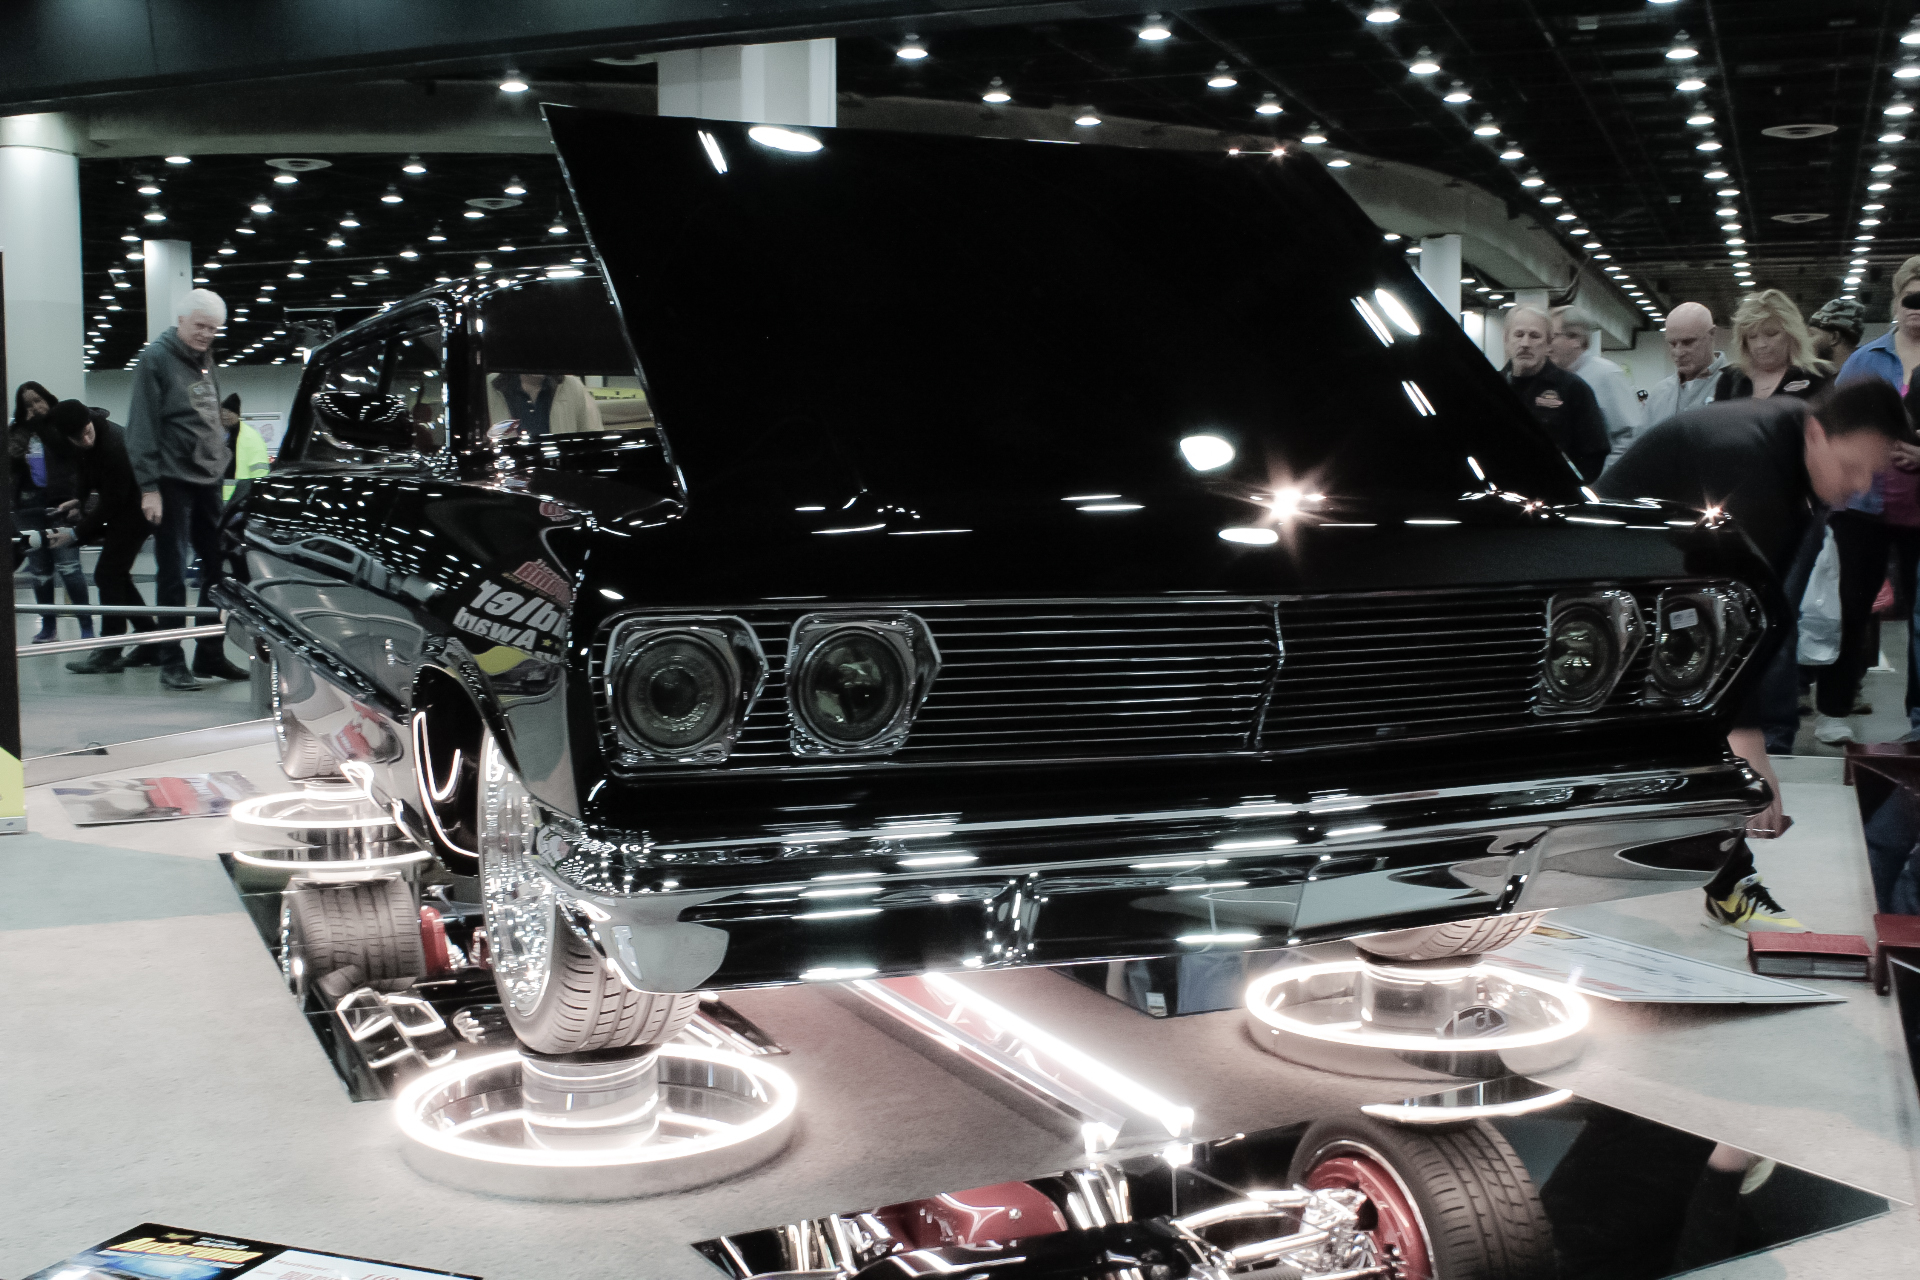 autorama 2020 ridler award winner is a 1963 chevy impala wagon 1963 chevy impala wagon